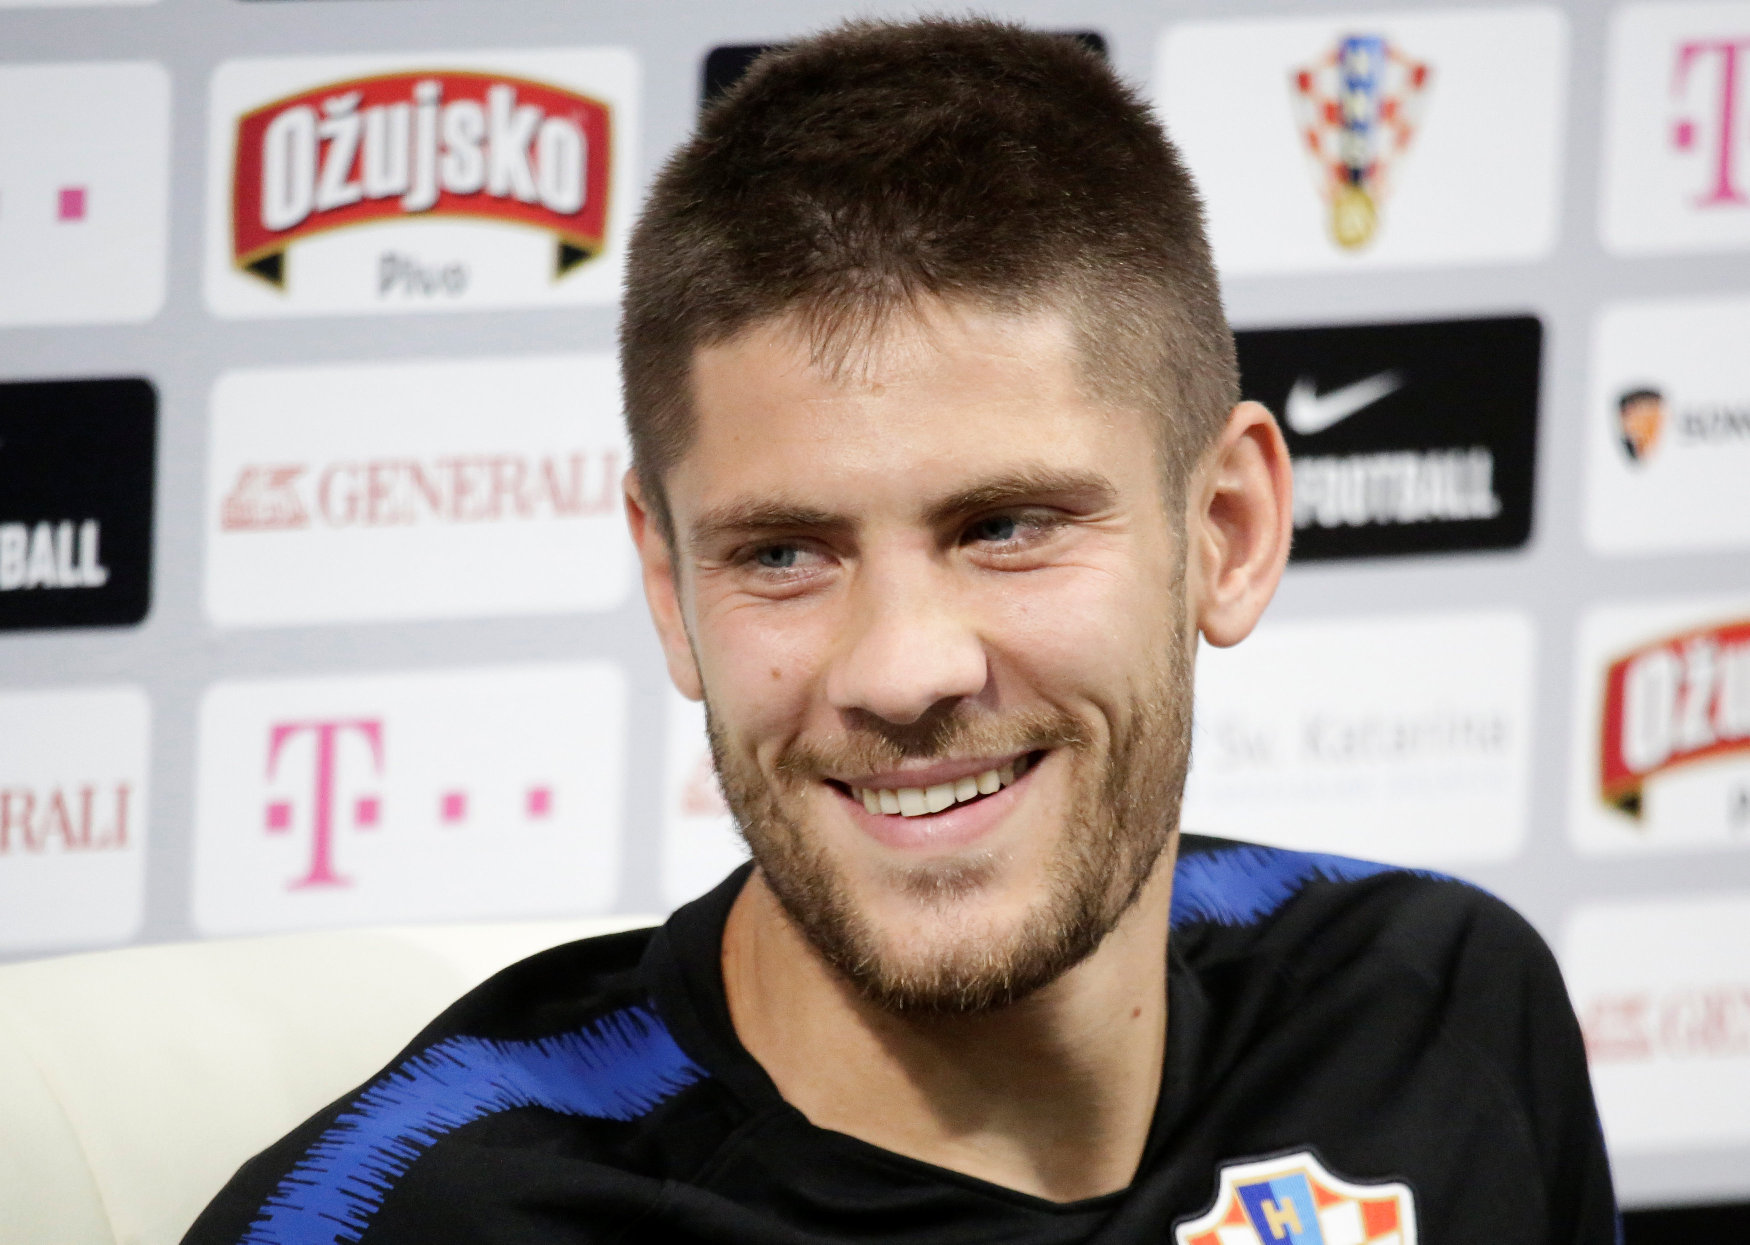 Soccer Football - World Cup - Croatia News Conference - Roschino Arena, St. Petersburg, Russia - June 11, 2018. Andrej Kramaric attends a news conference. REUTERS/Anton Vaganov